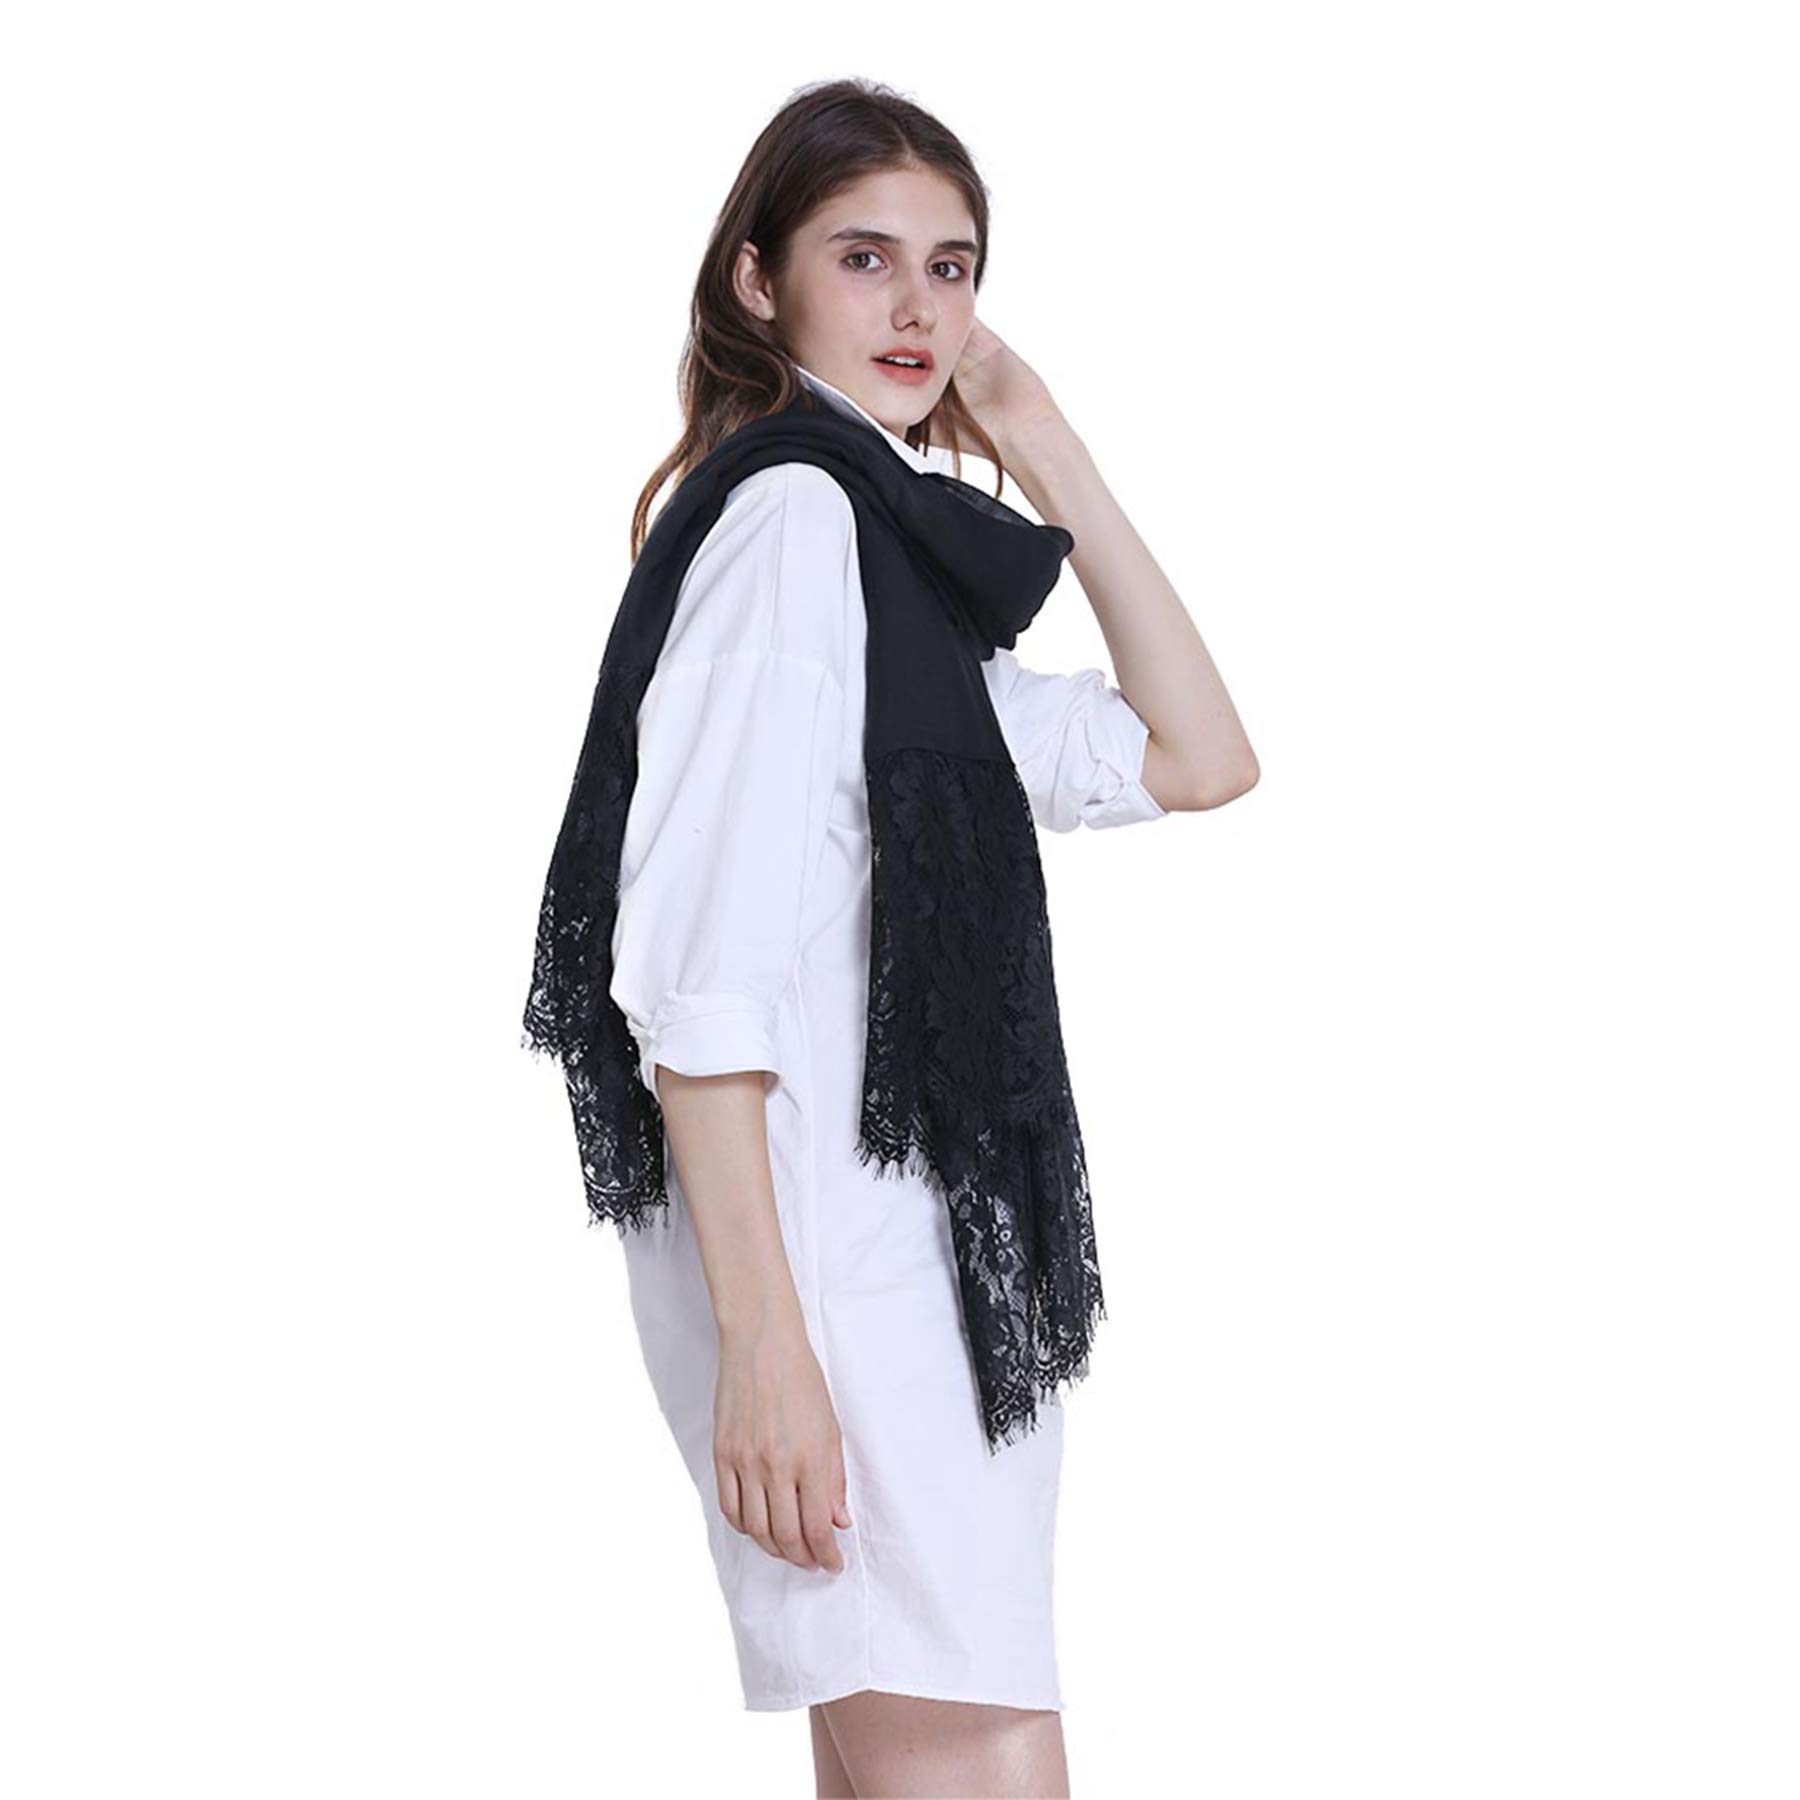 Women Fashion Scarf Wrap Shawl,RiscaWin Autumn Soft Lightweight Lace Scarves Wrap Warm Scarf(Black) by RiscaWin (Image #4)